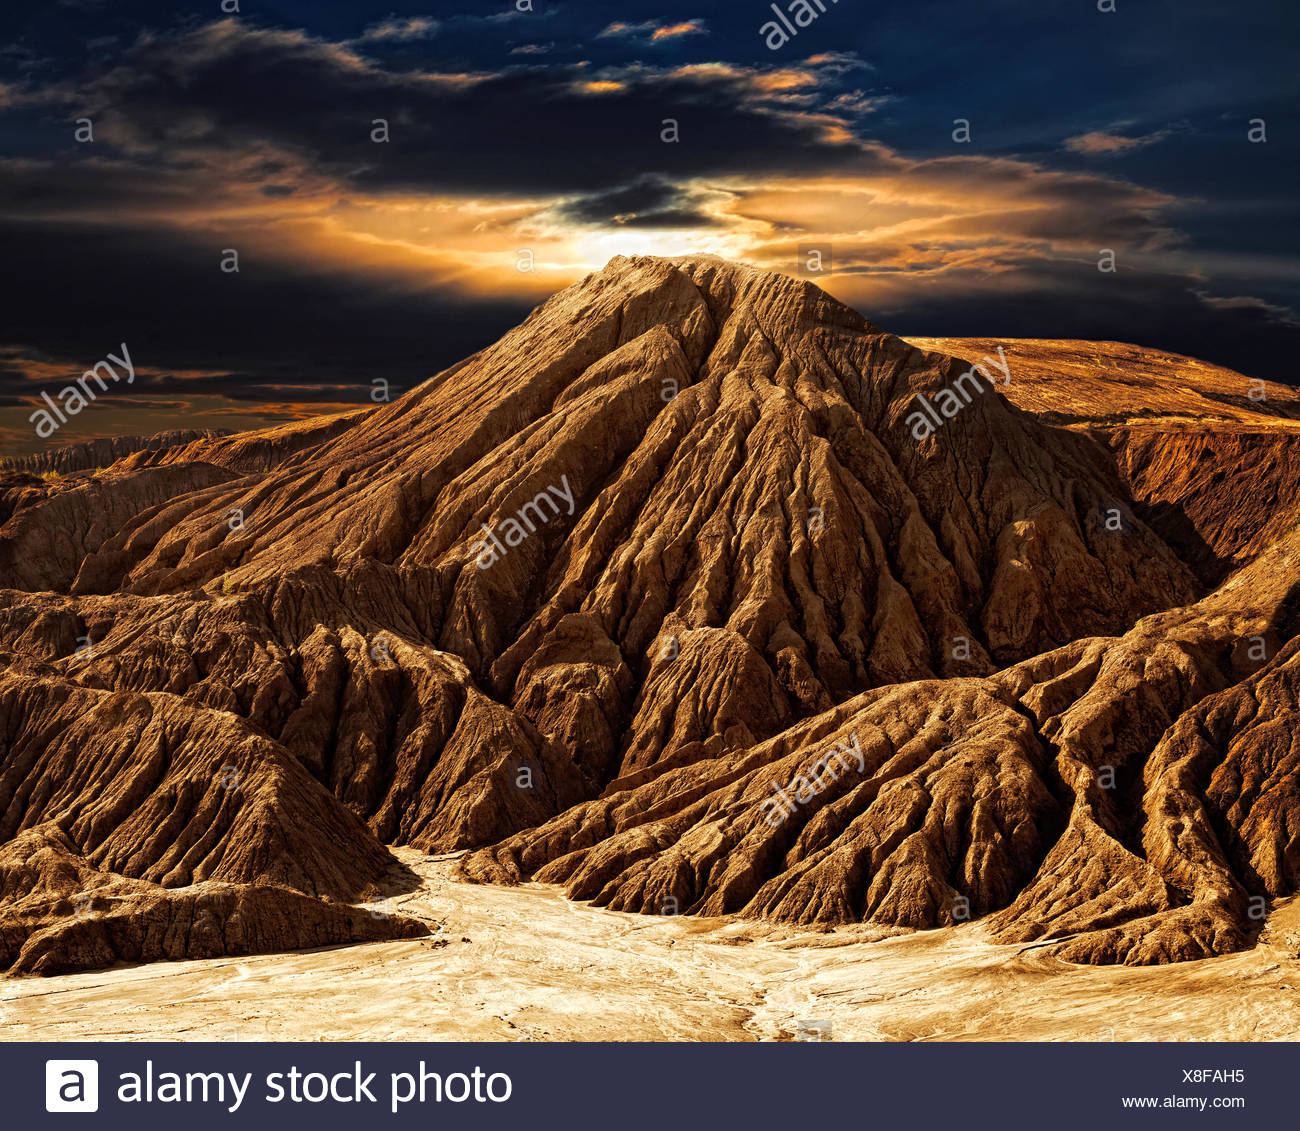 Fantastic desert mountain landscape with the night sky - Stock Image